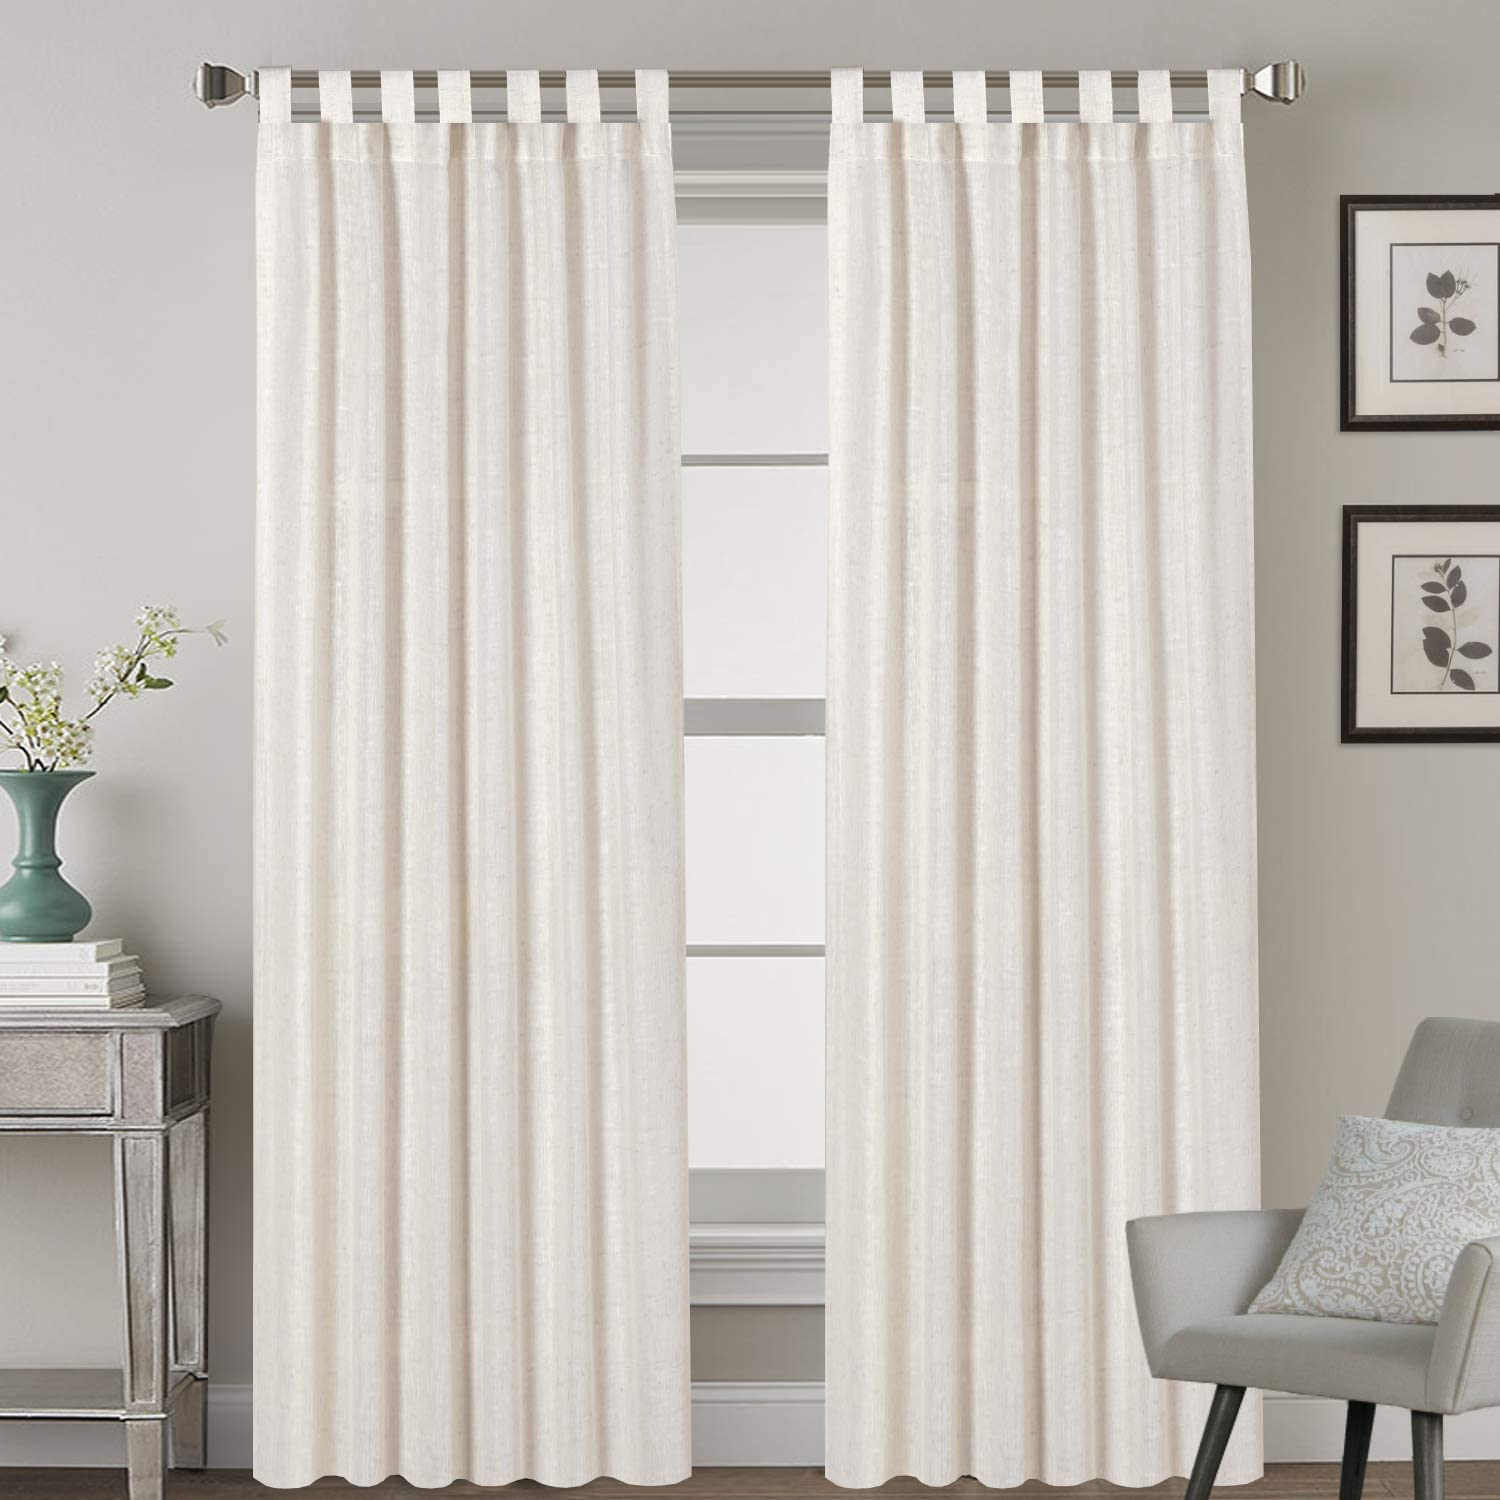 Tab Top Natural Linen Blended Airy Curtains for Living Room Home Decor Soft Rich Material Light Reducing Bedroom Drape Panels, Set of 2, 52 x 84 -Inch - Natural Pattern